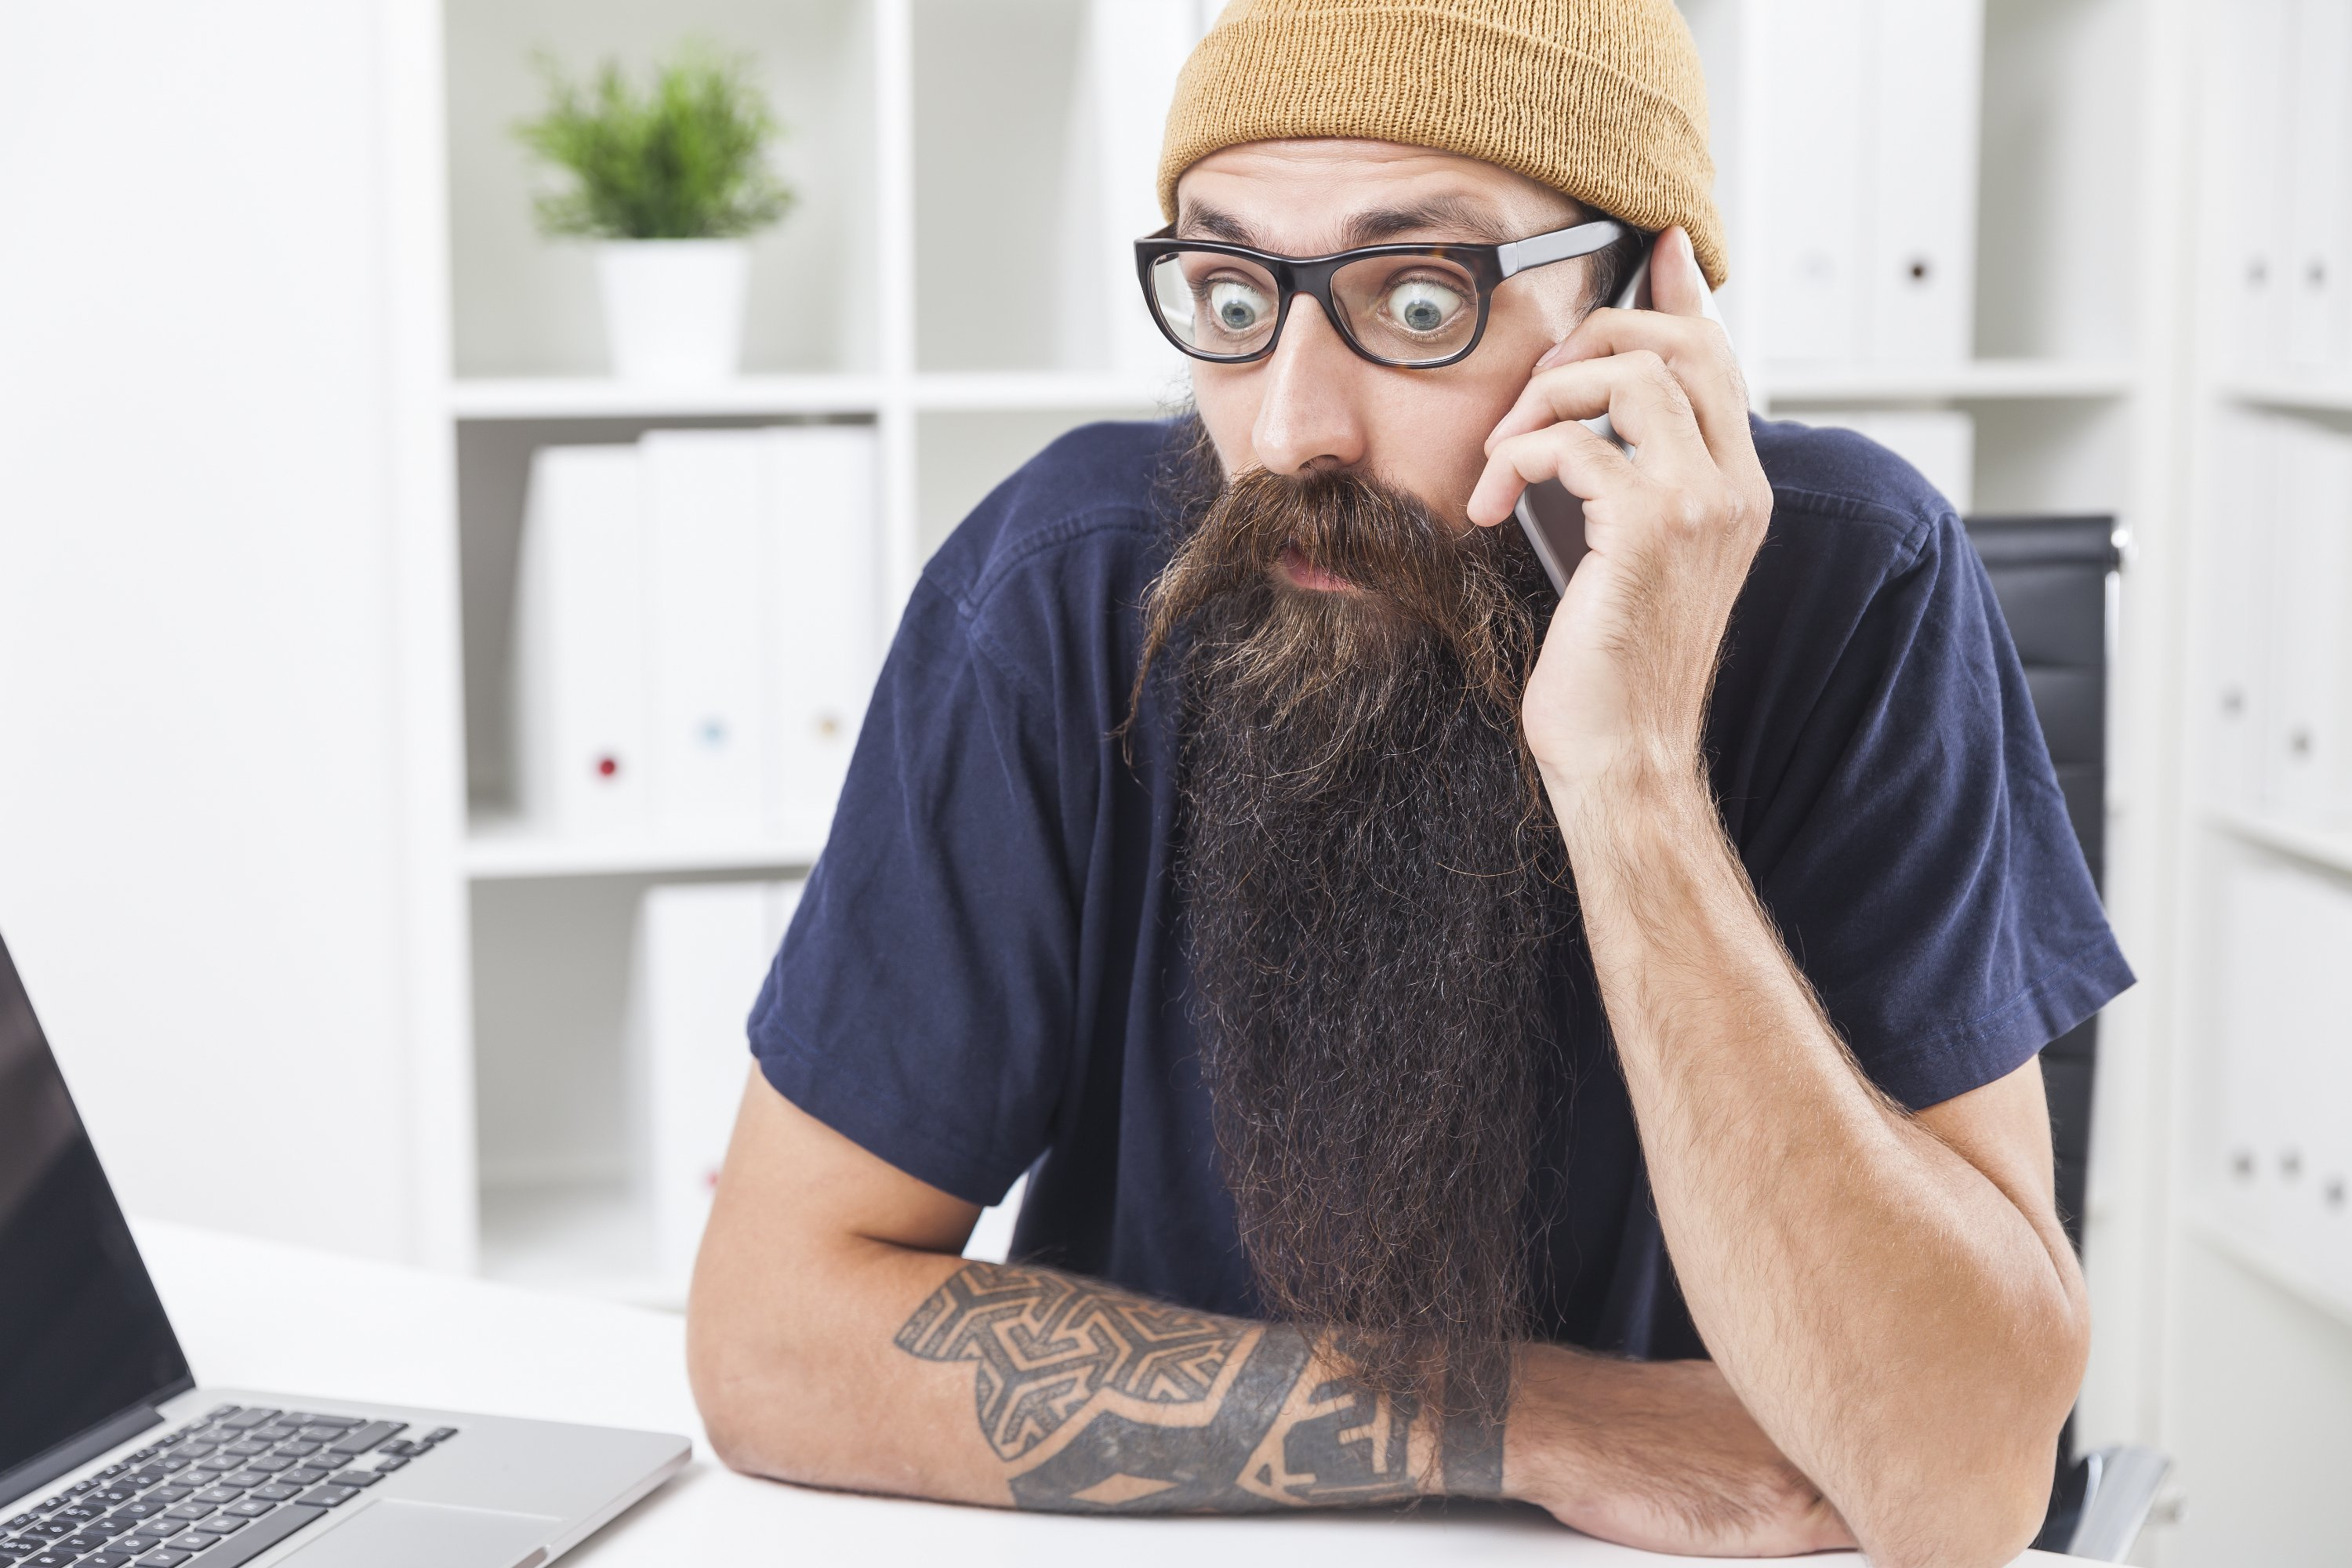 How Long Was The Longest Beard in The World?